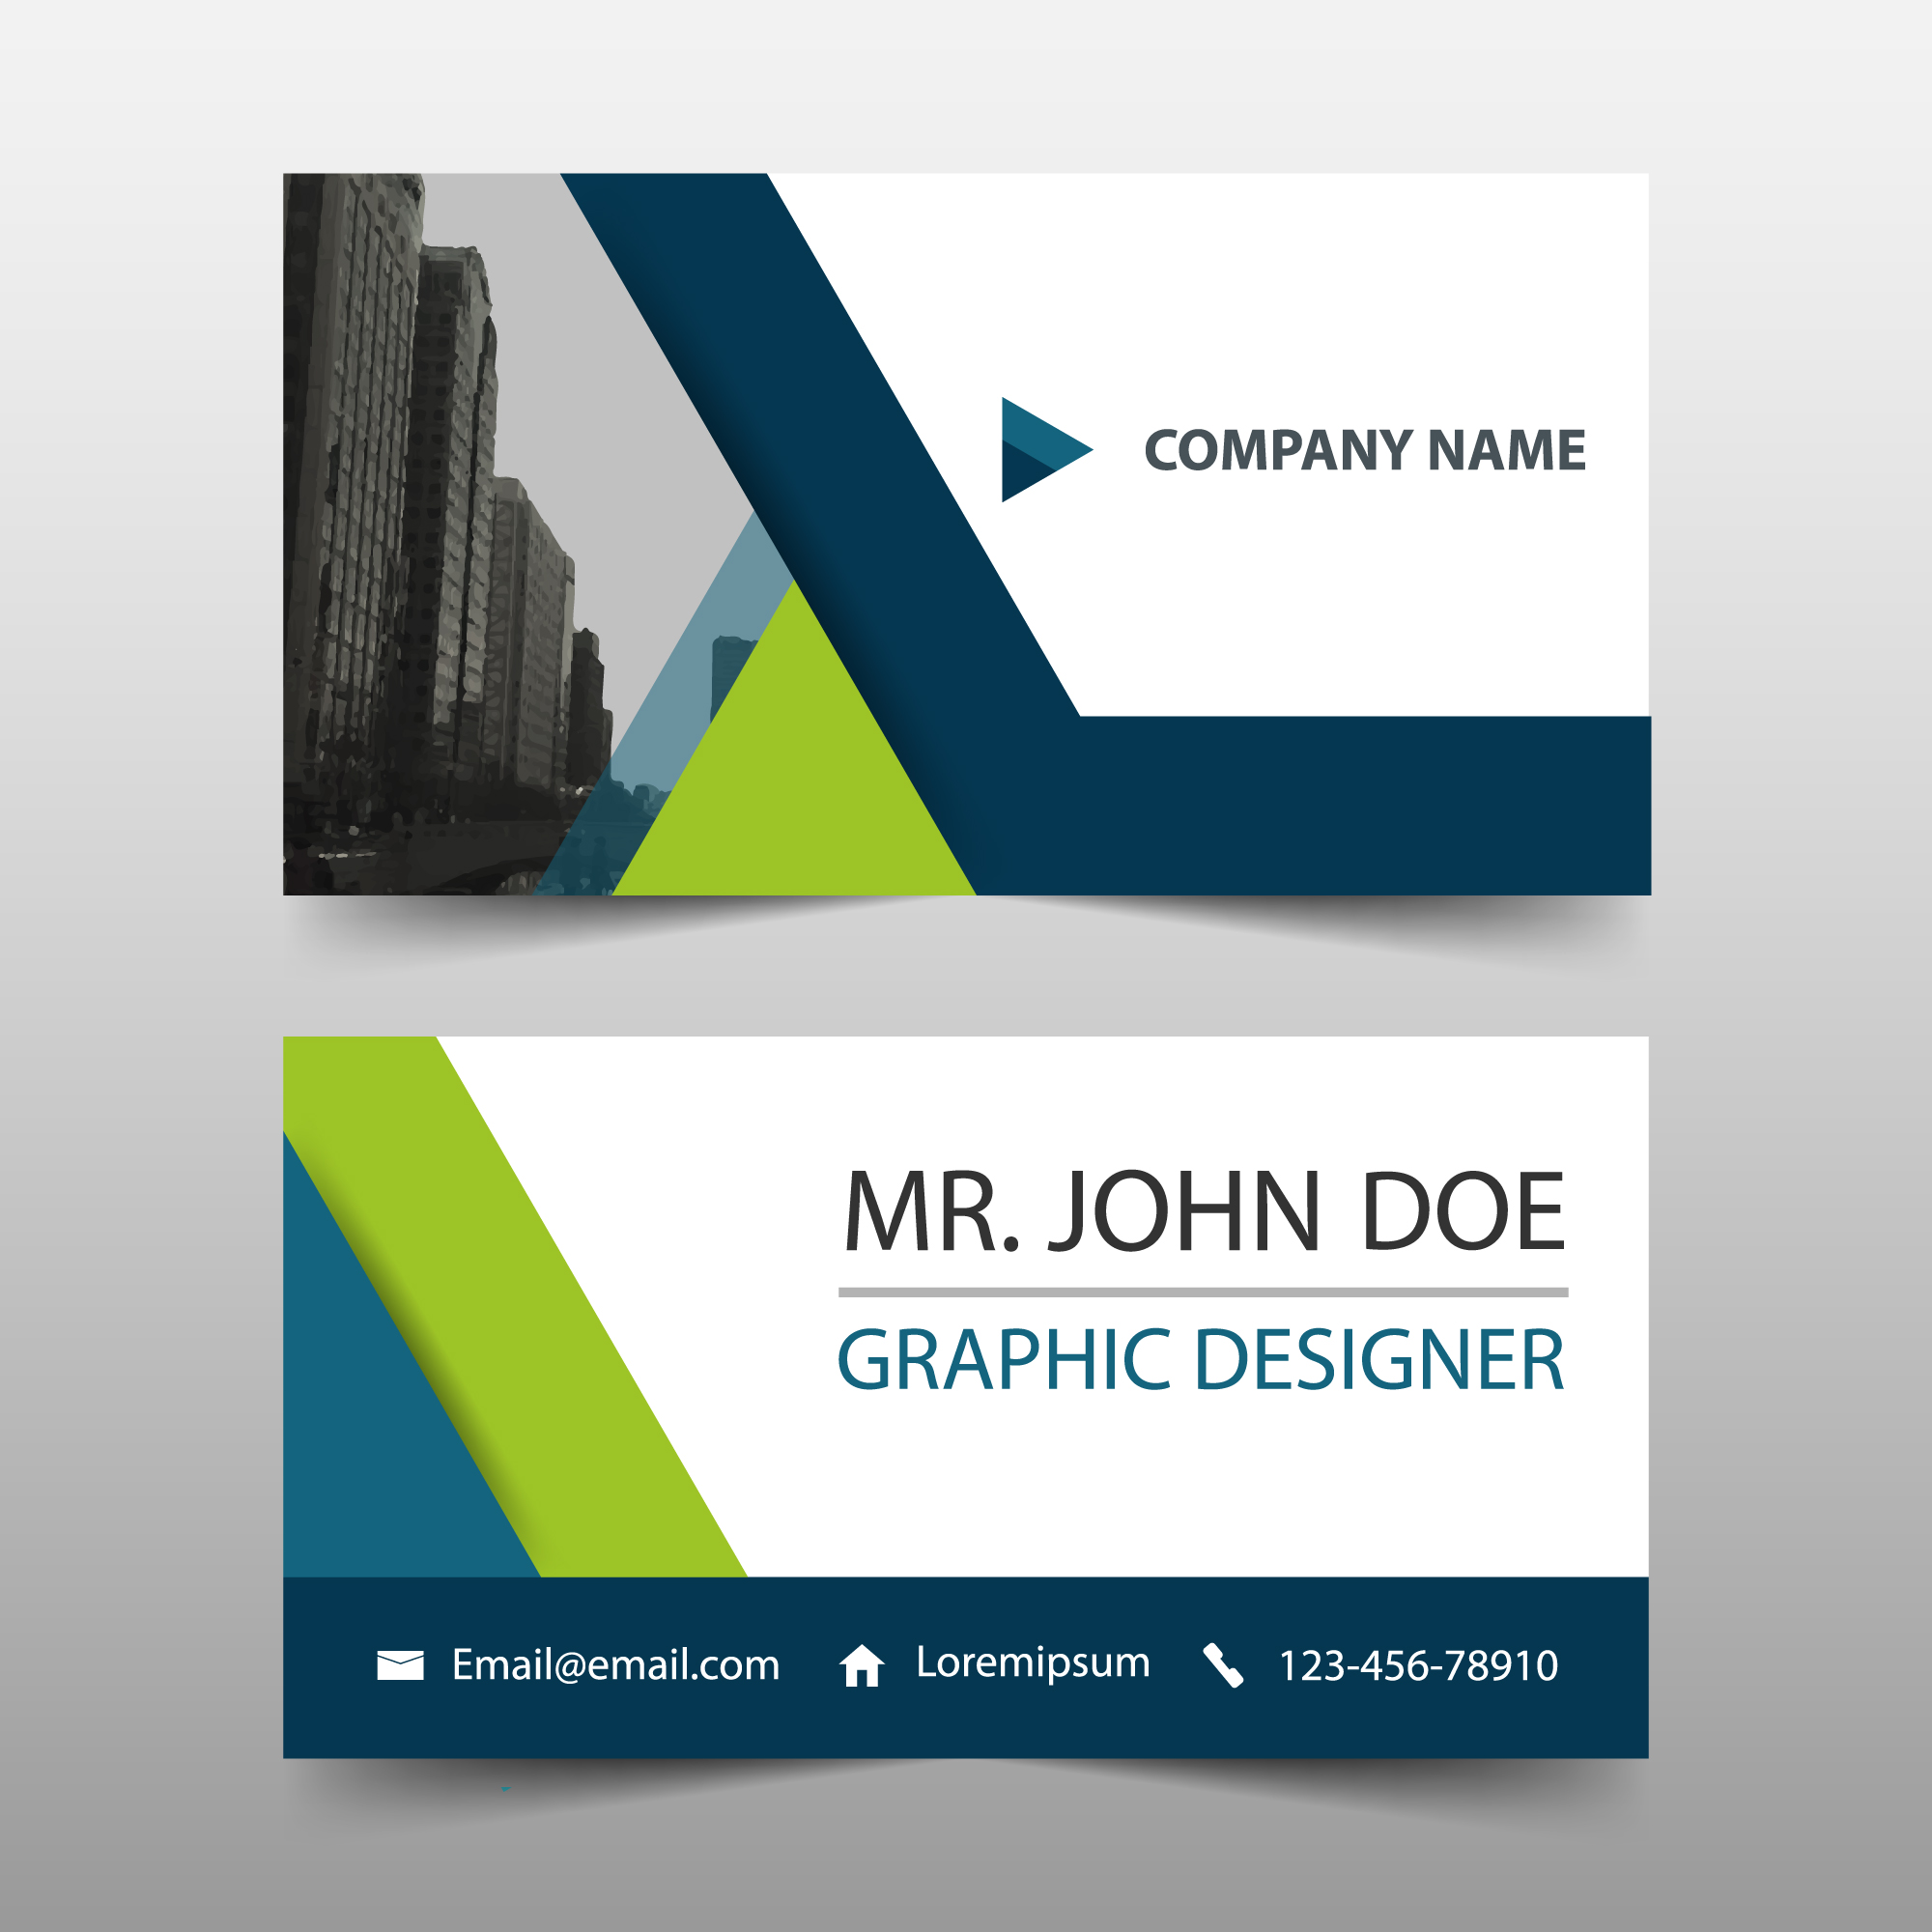 Simple business card, green and blue color